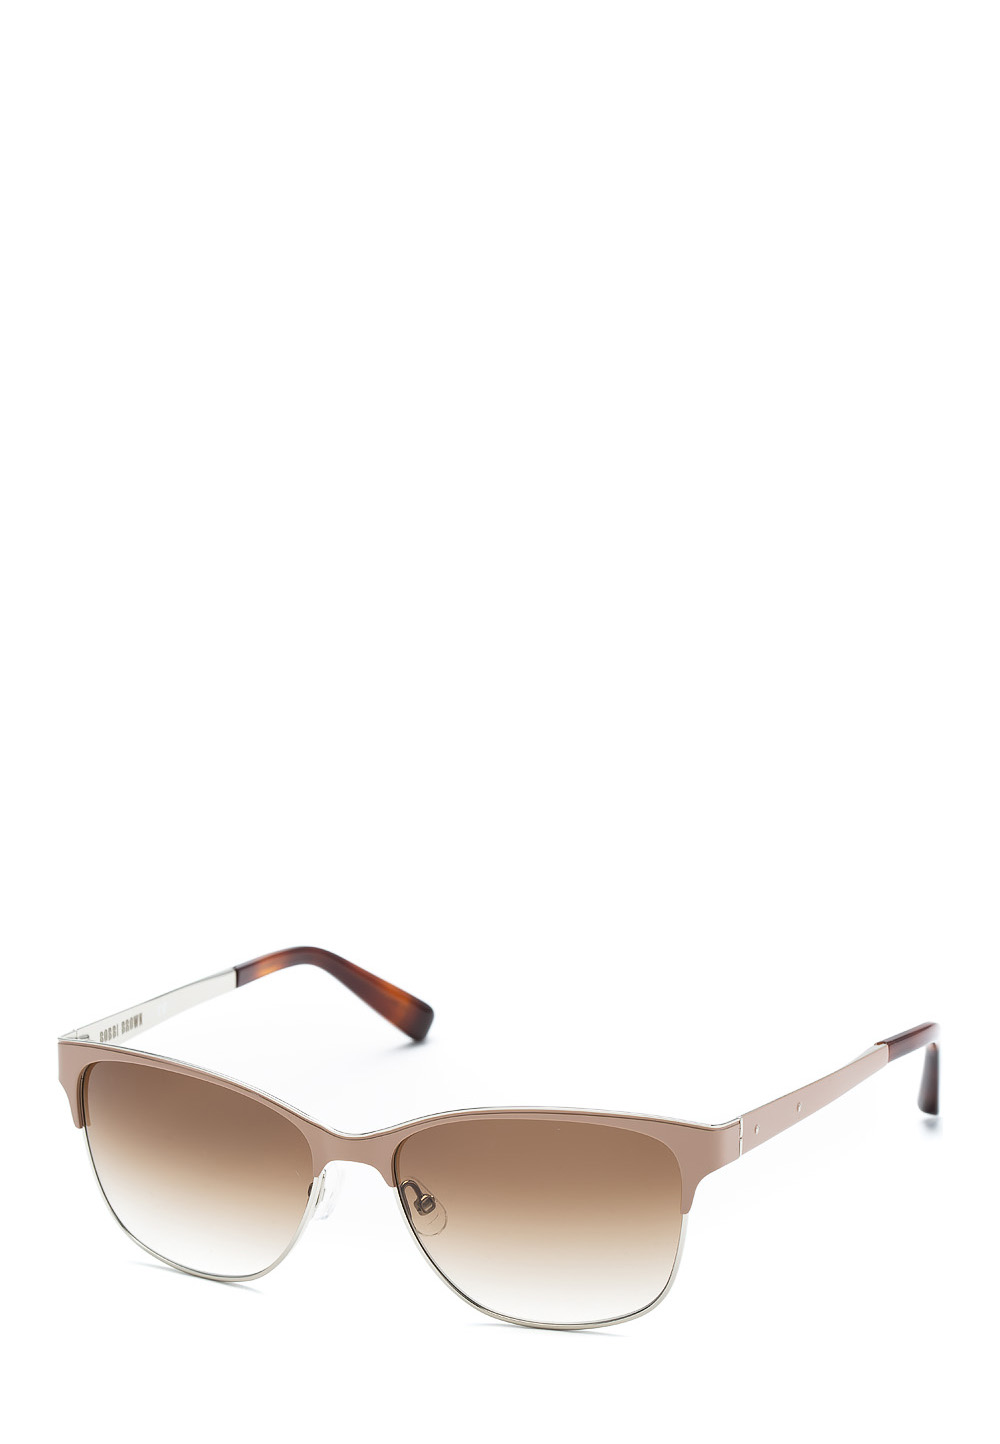 Bobbi Brown Sonnenbrille The Ruby, UV 400, braun